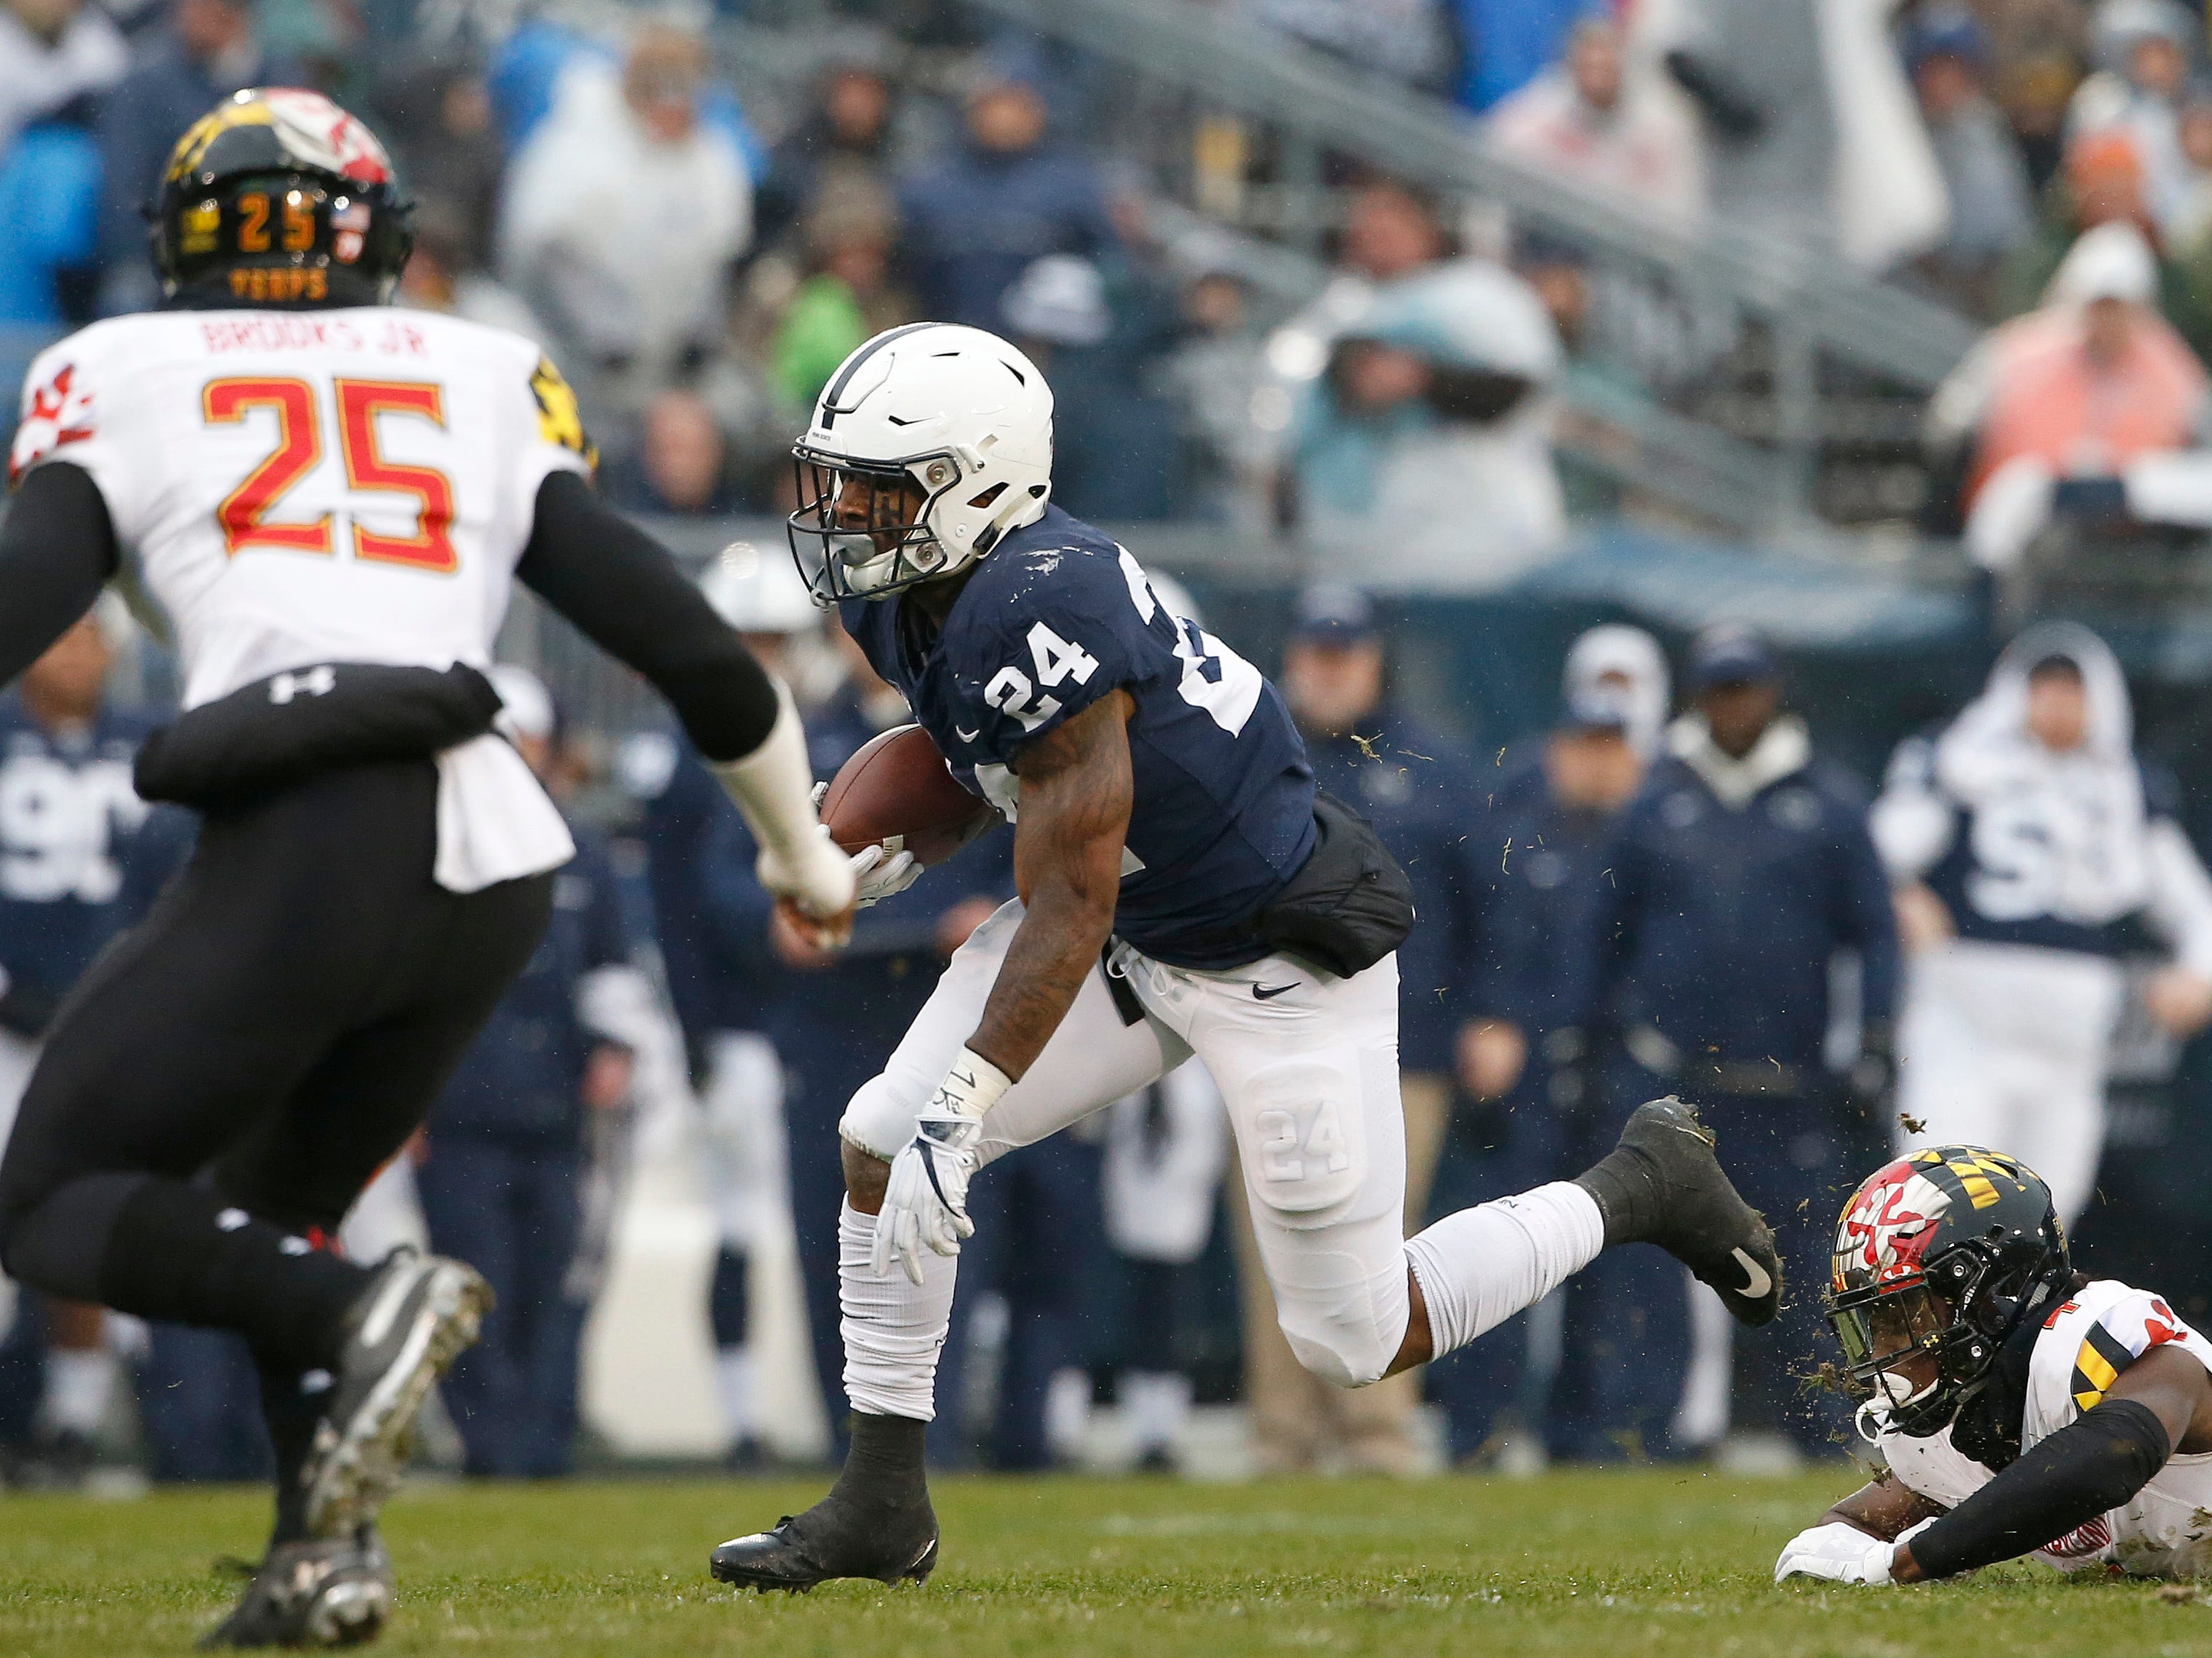 Penn State's Miles Sanders (24) gets past Maryland's Darnell Savage Jr. (4) during the first half of an NCAA college football game in State College, Pa., Saturday, Nov. 24, 2018.